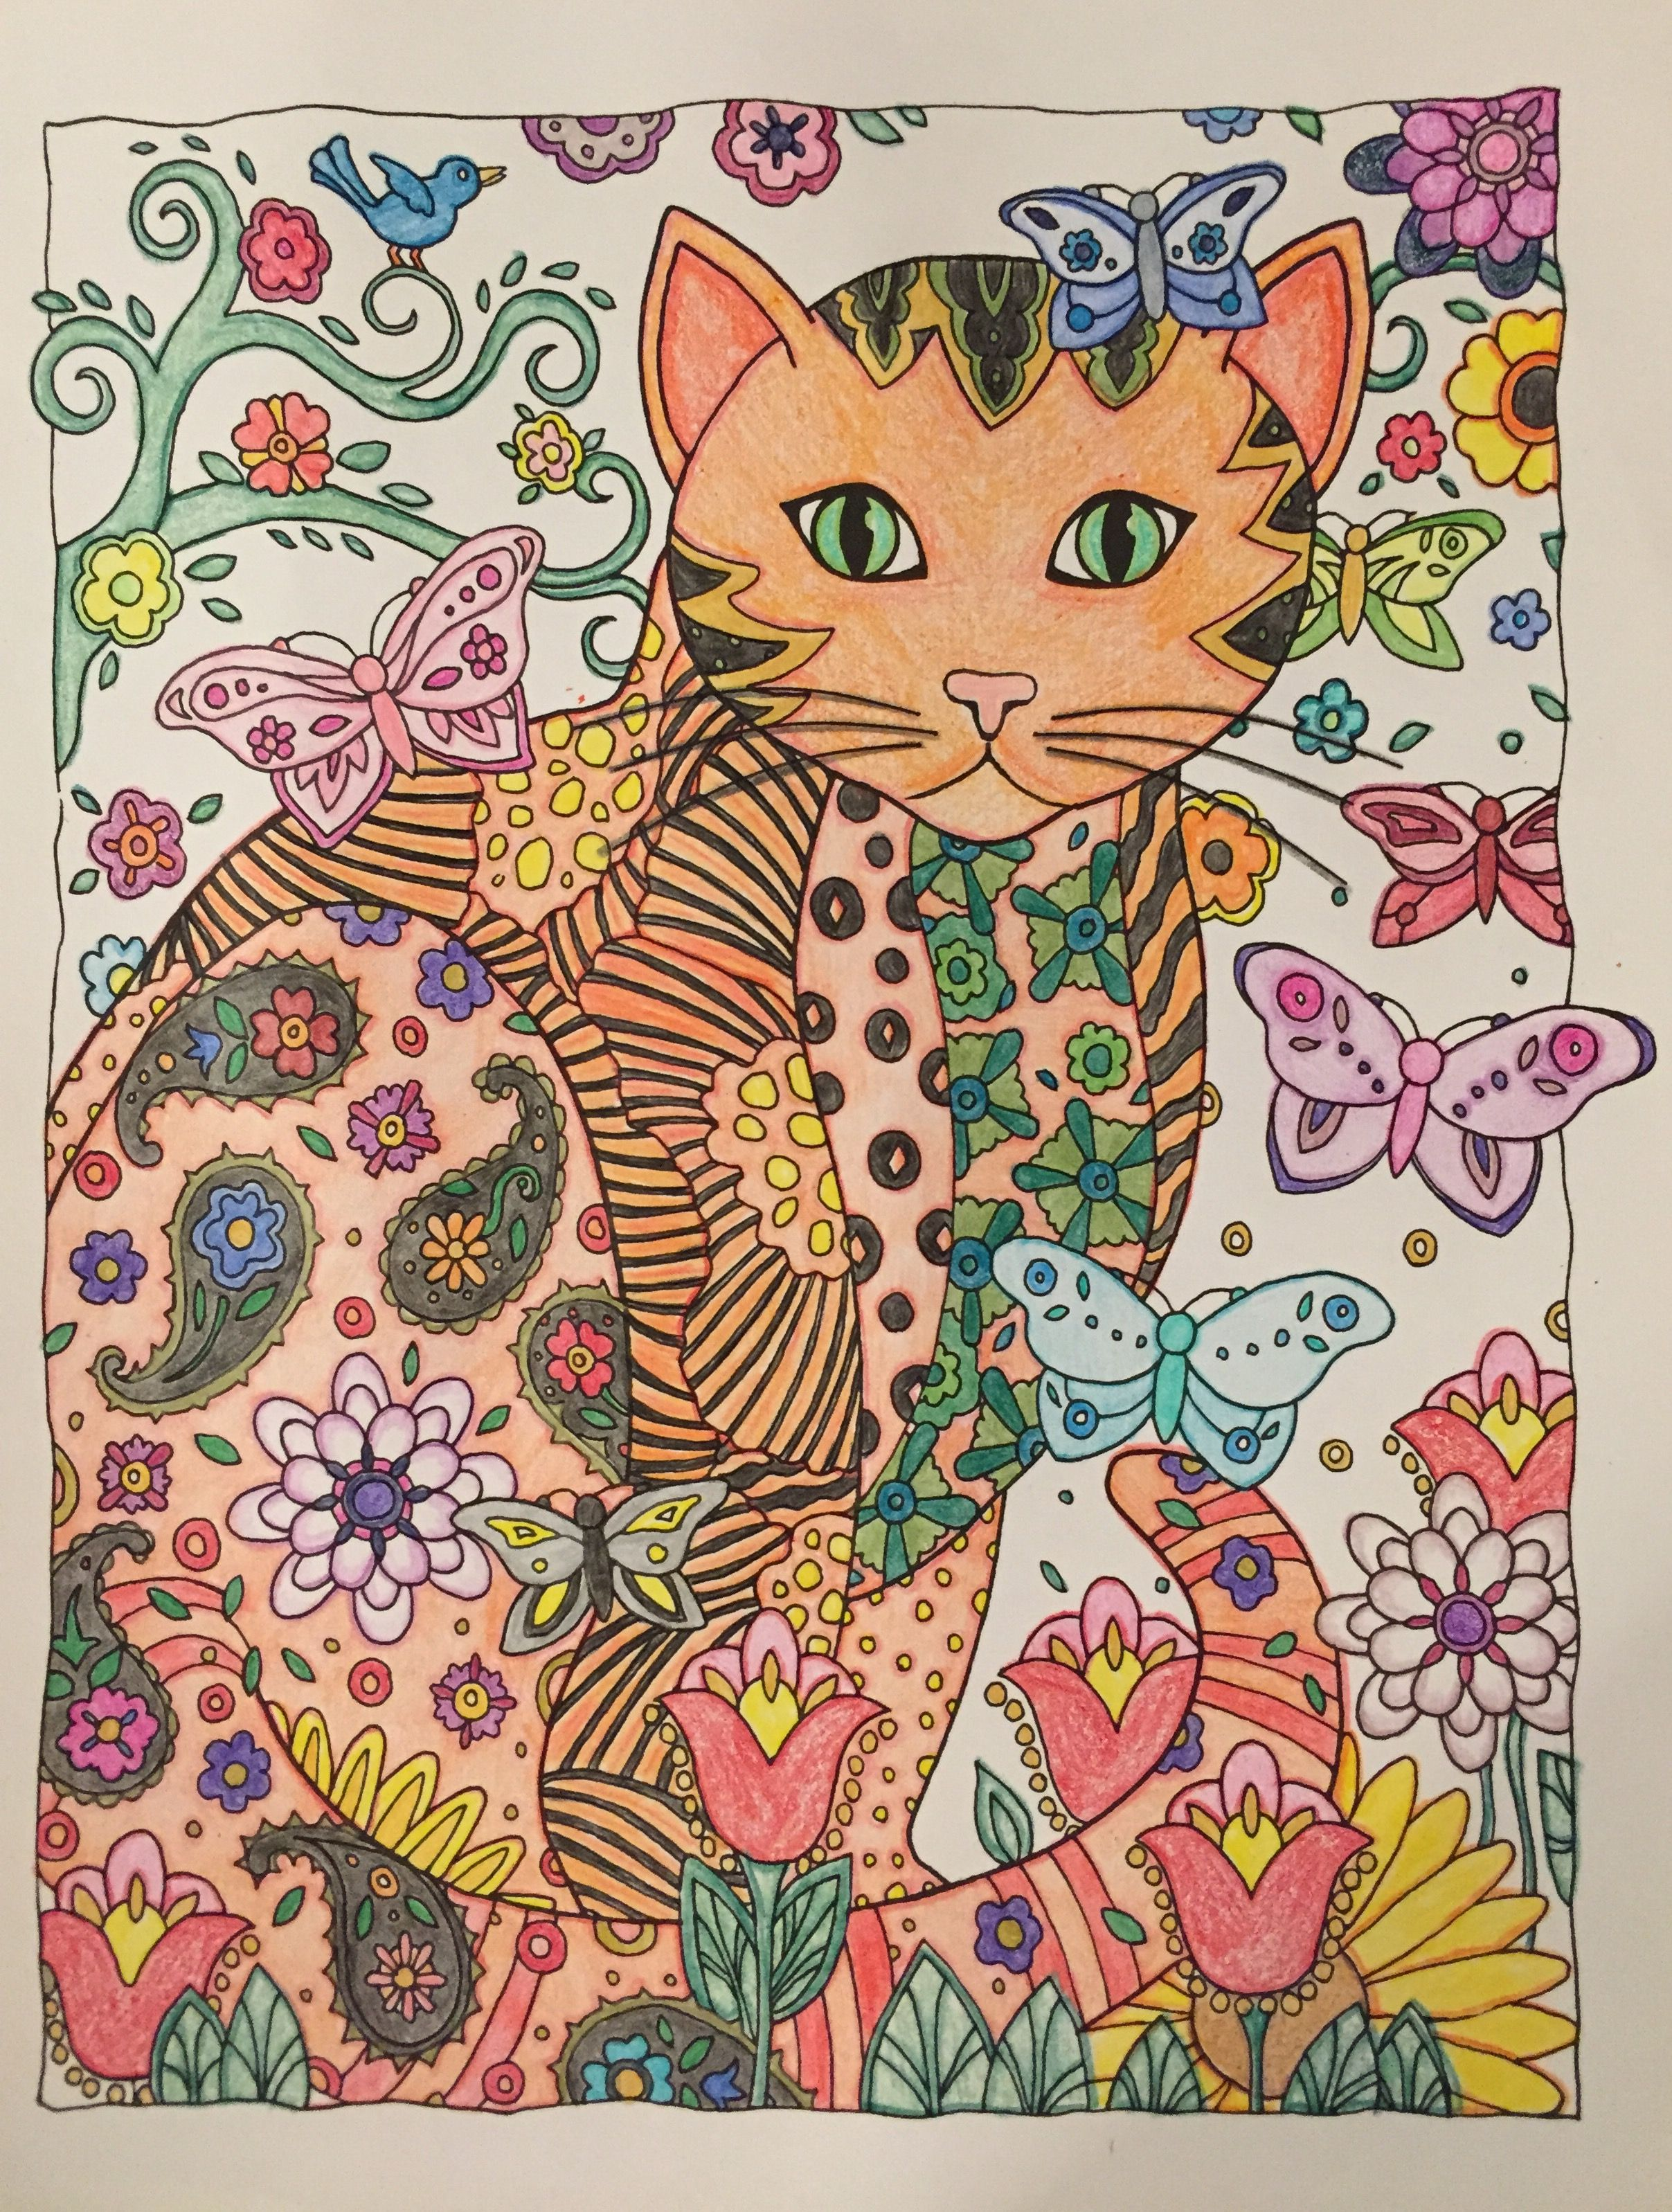 CRAZY CATS WITH BUTTERFLY For More Great Pins Go To KaseyBelleFox